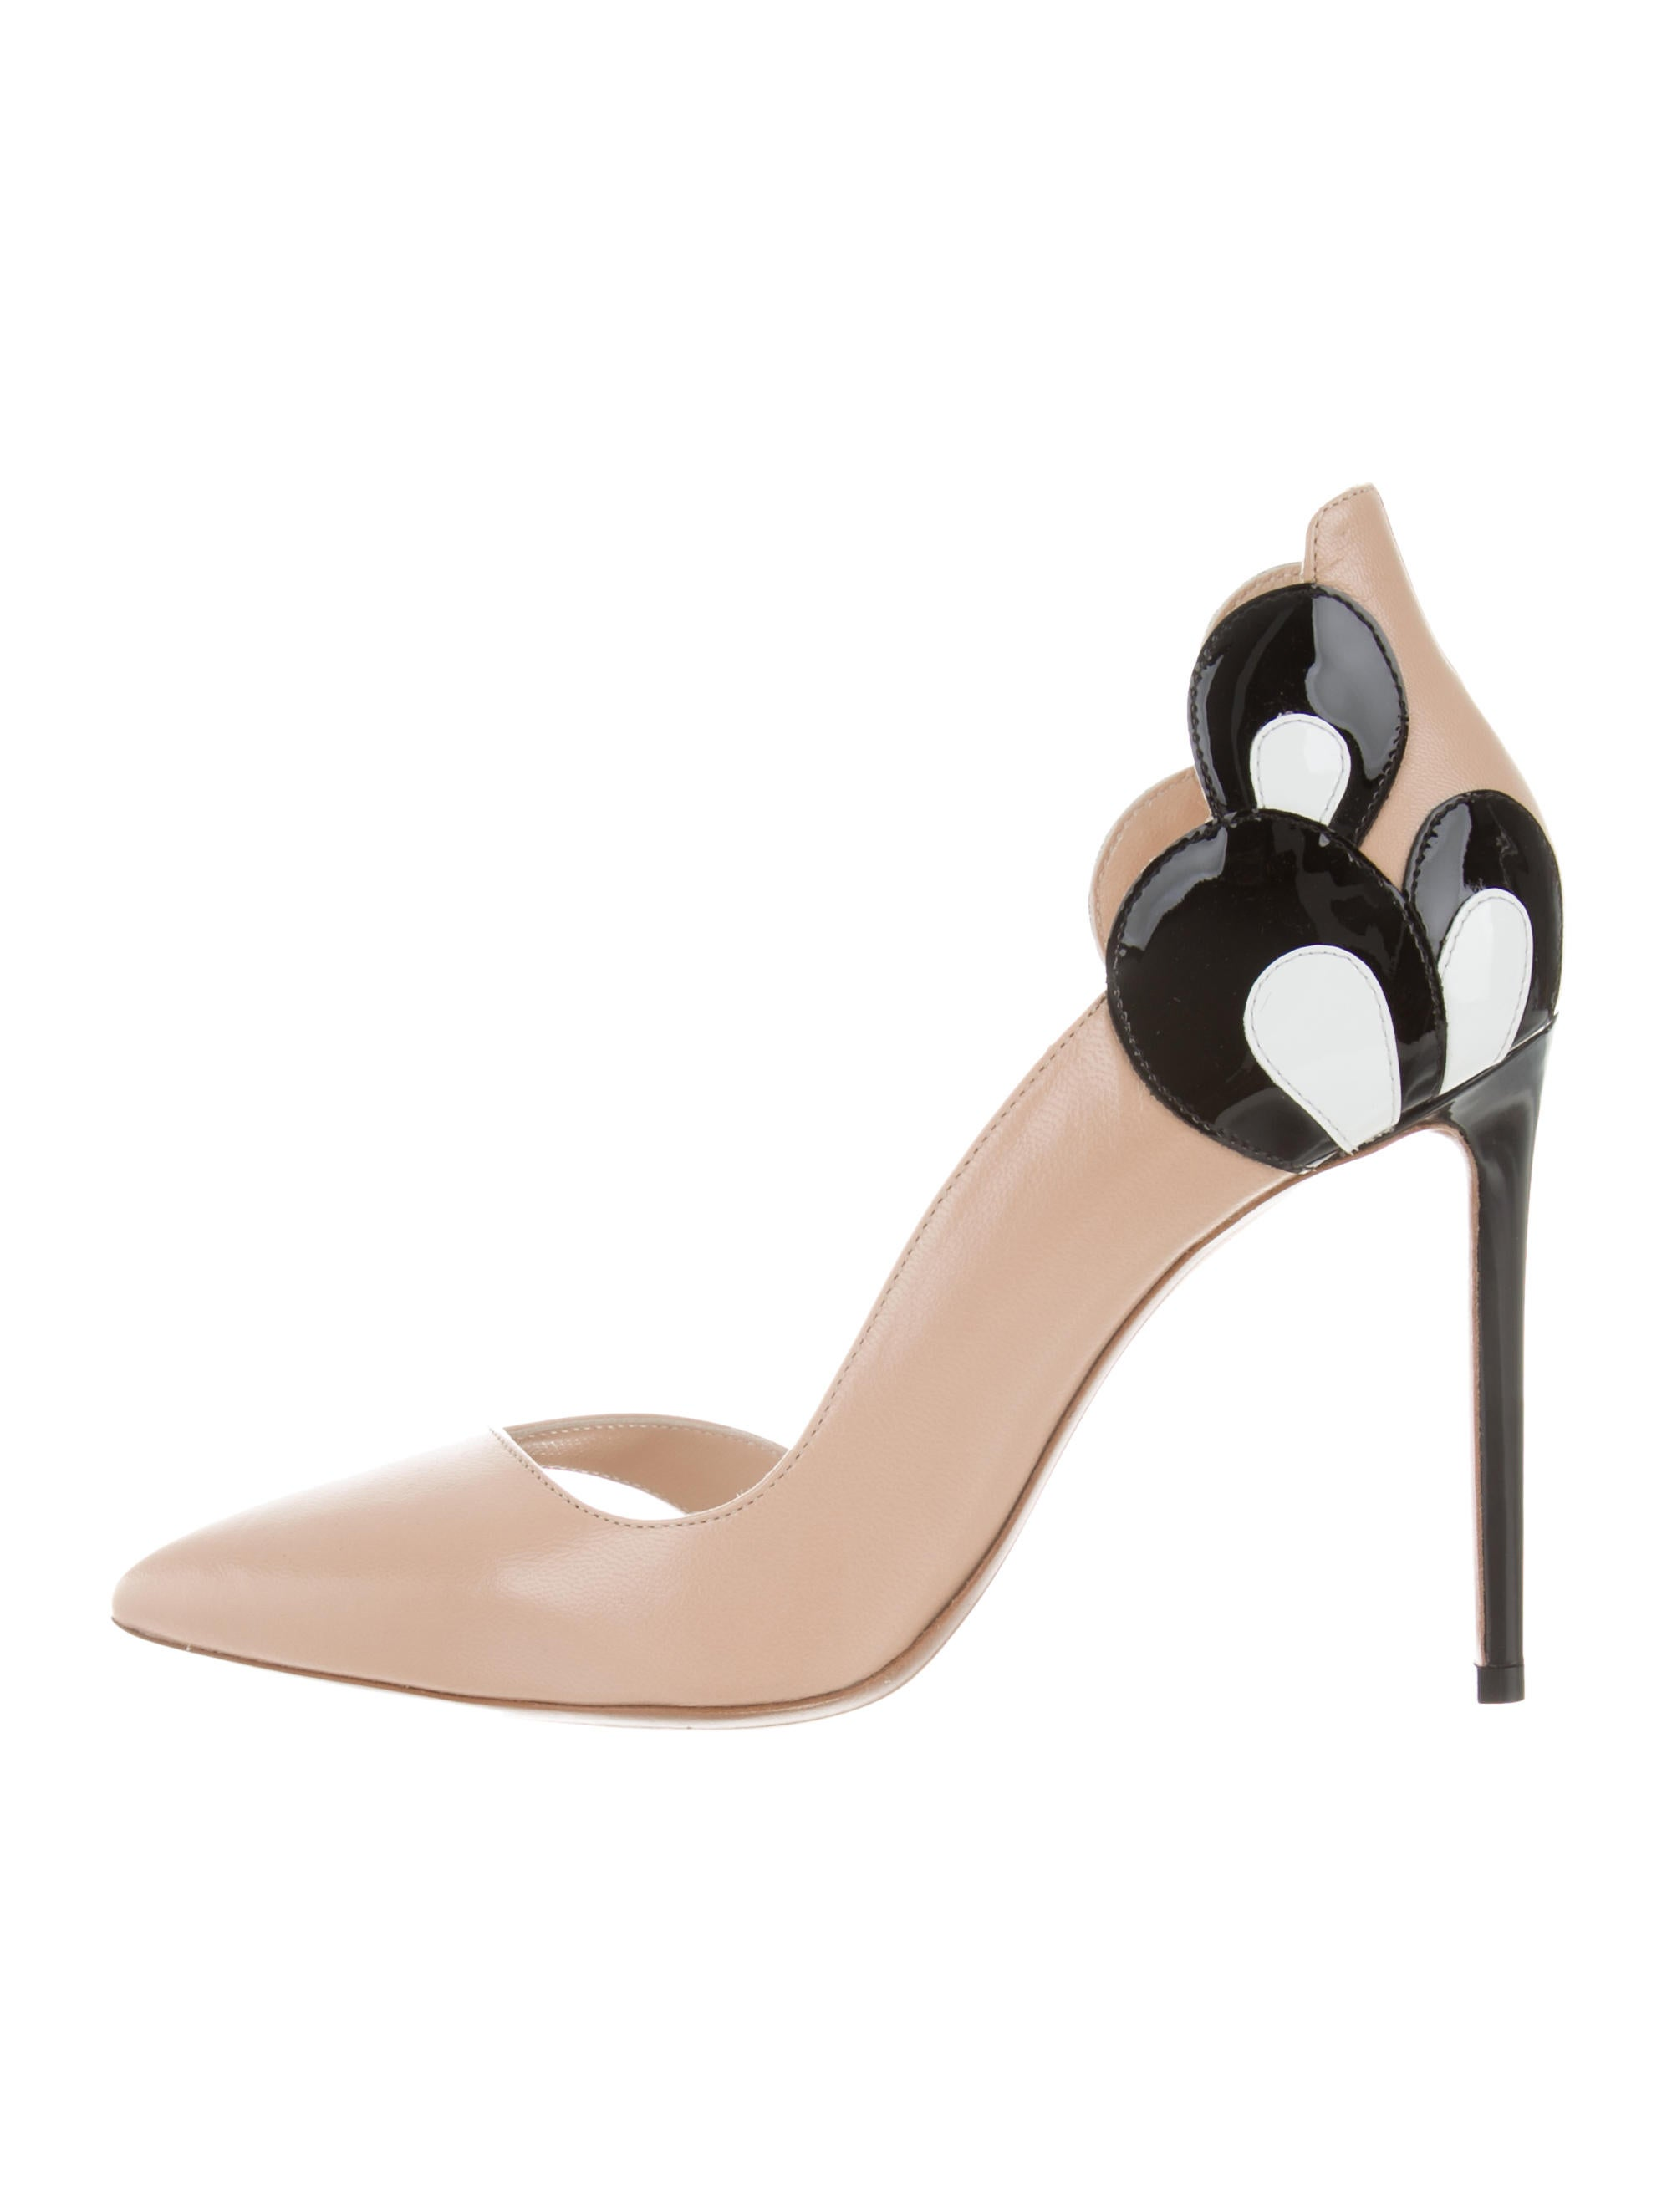 Nicholas Kirkwood Pointed-Toe D'Orsay Pumps w/ Tags sale new arrival best cheap online outlet from china GI8jiQNCZM